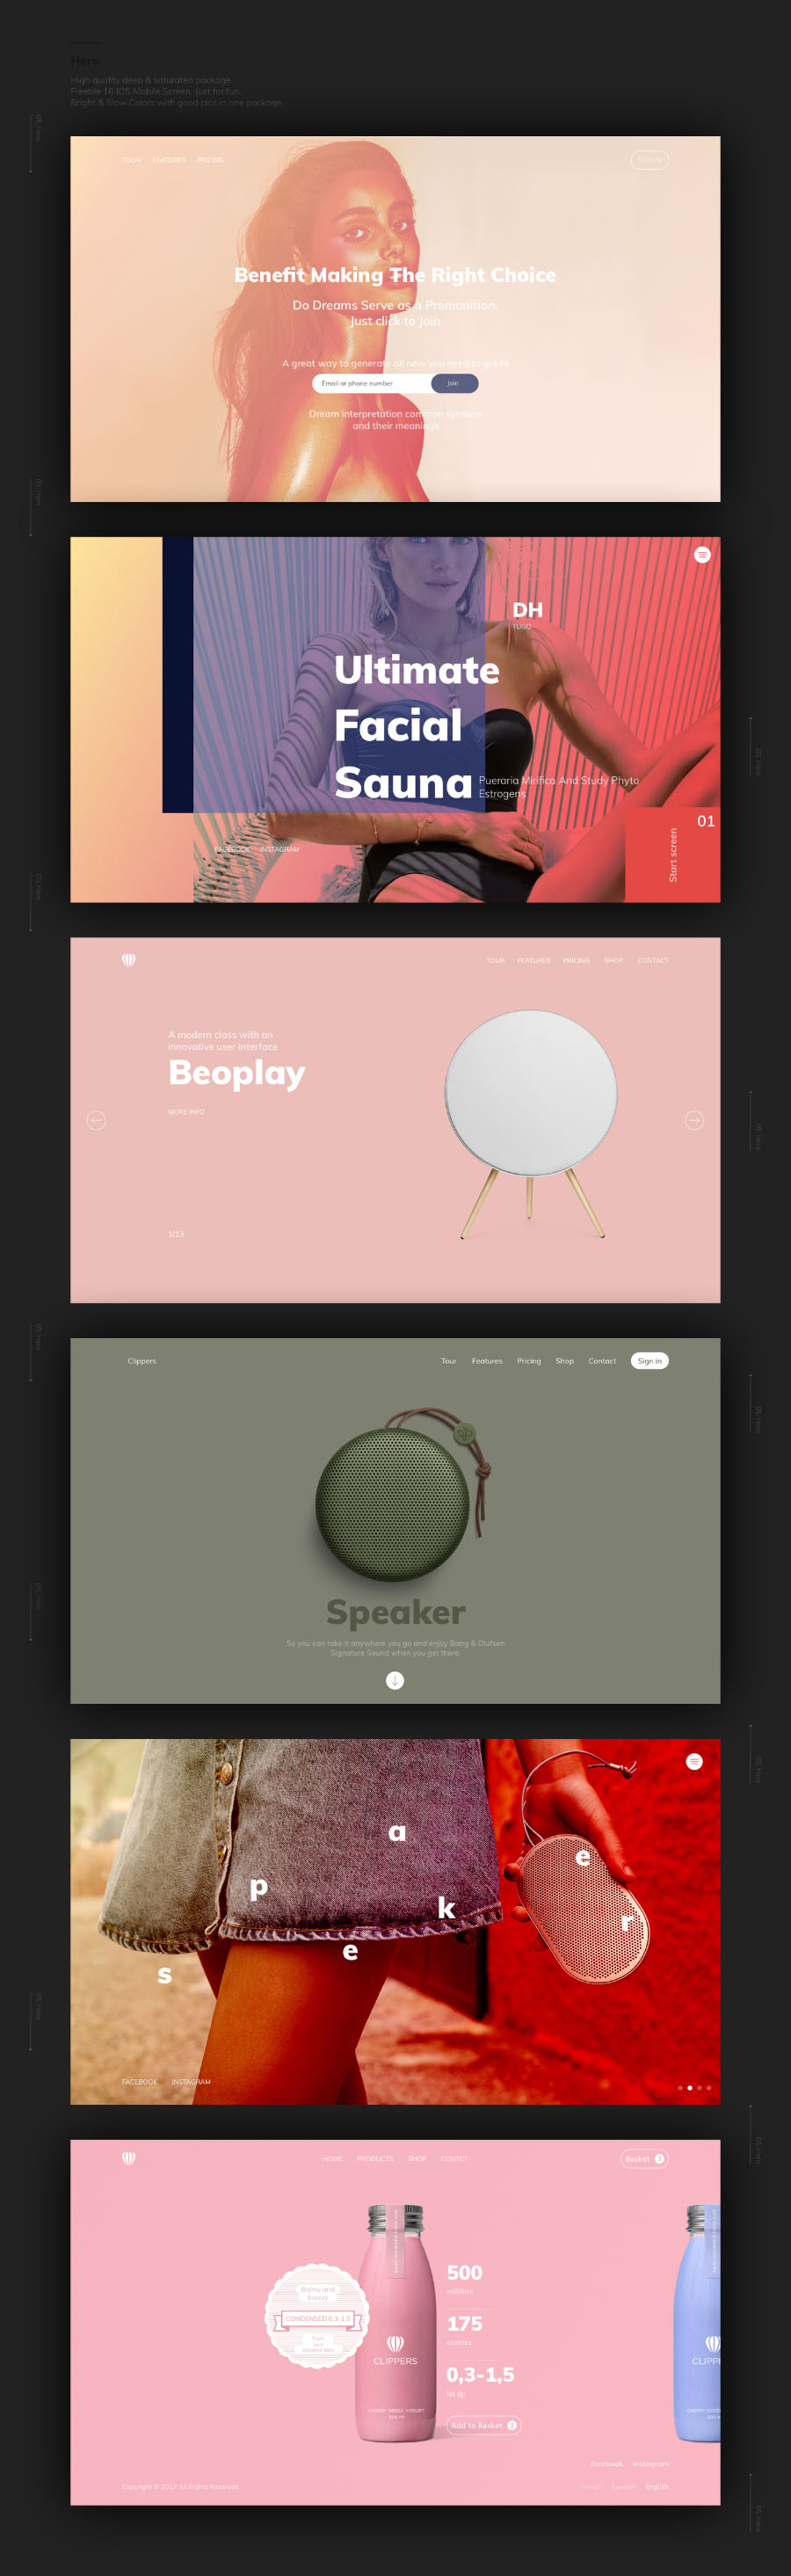 Clippers UI Kit Free Sample